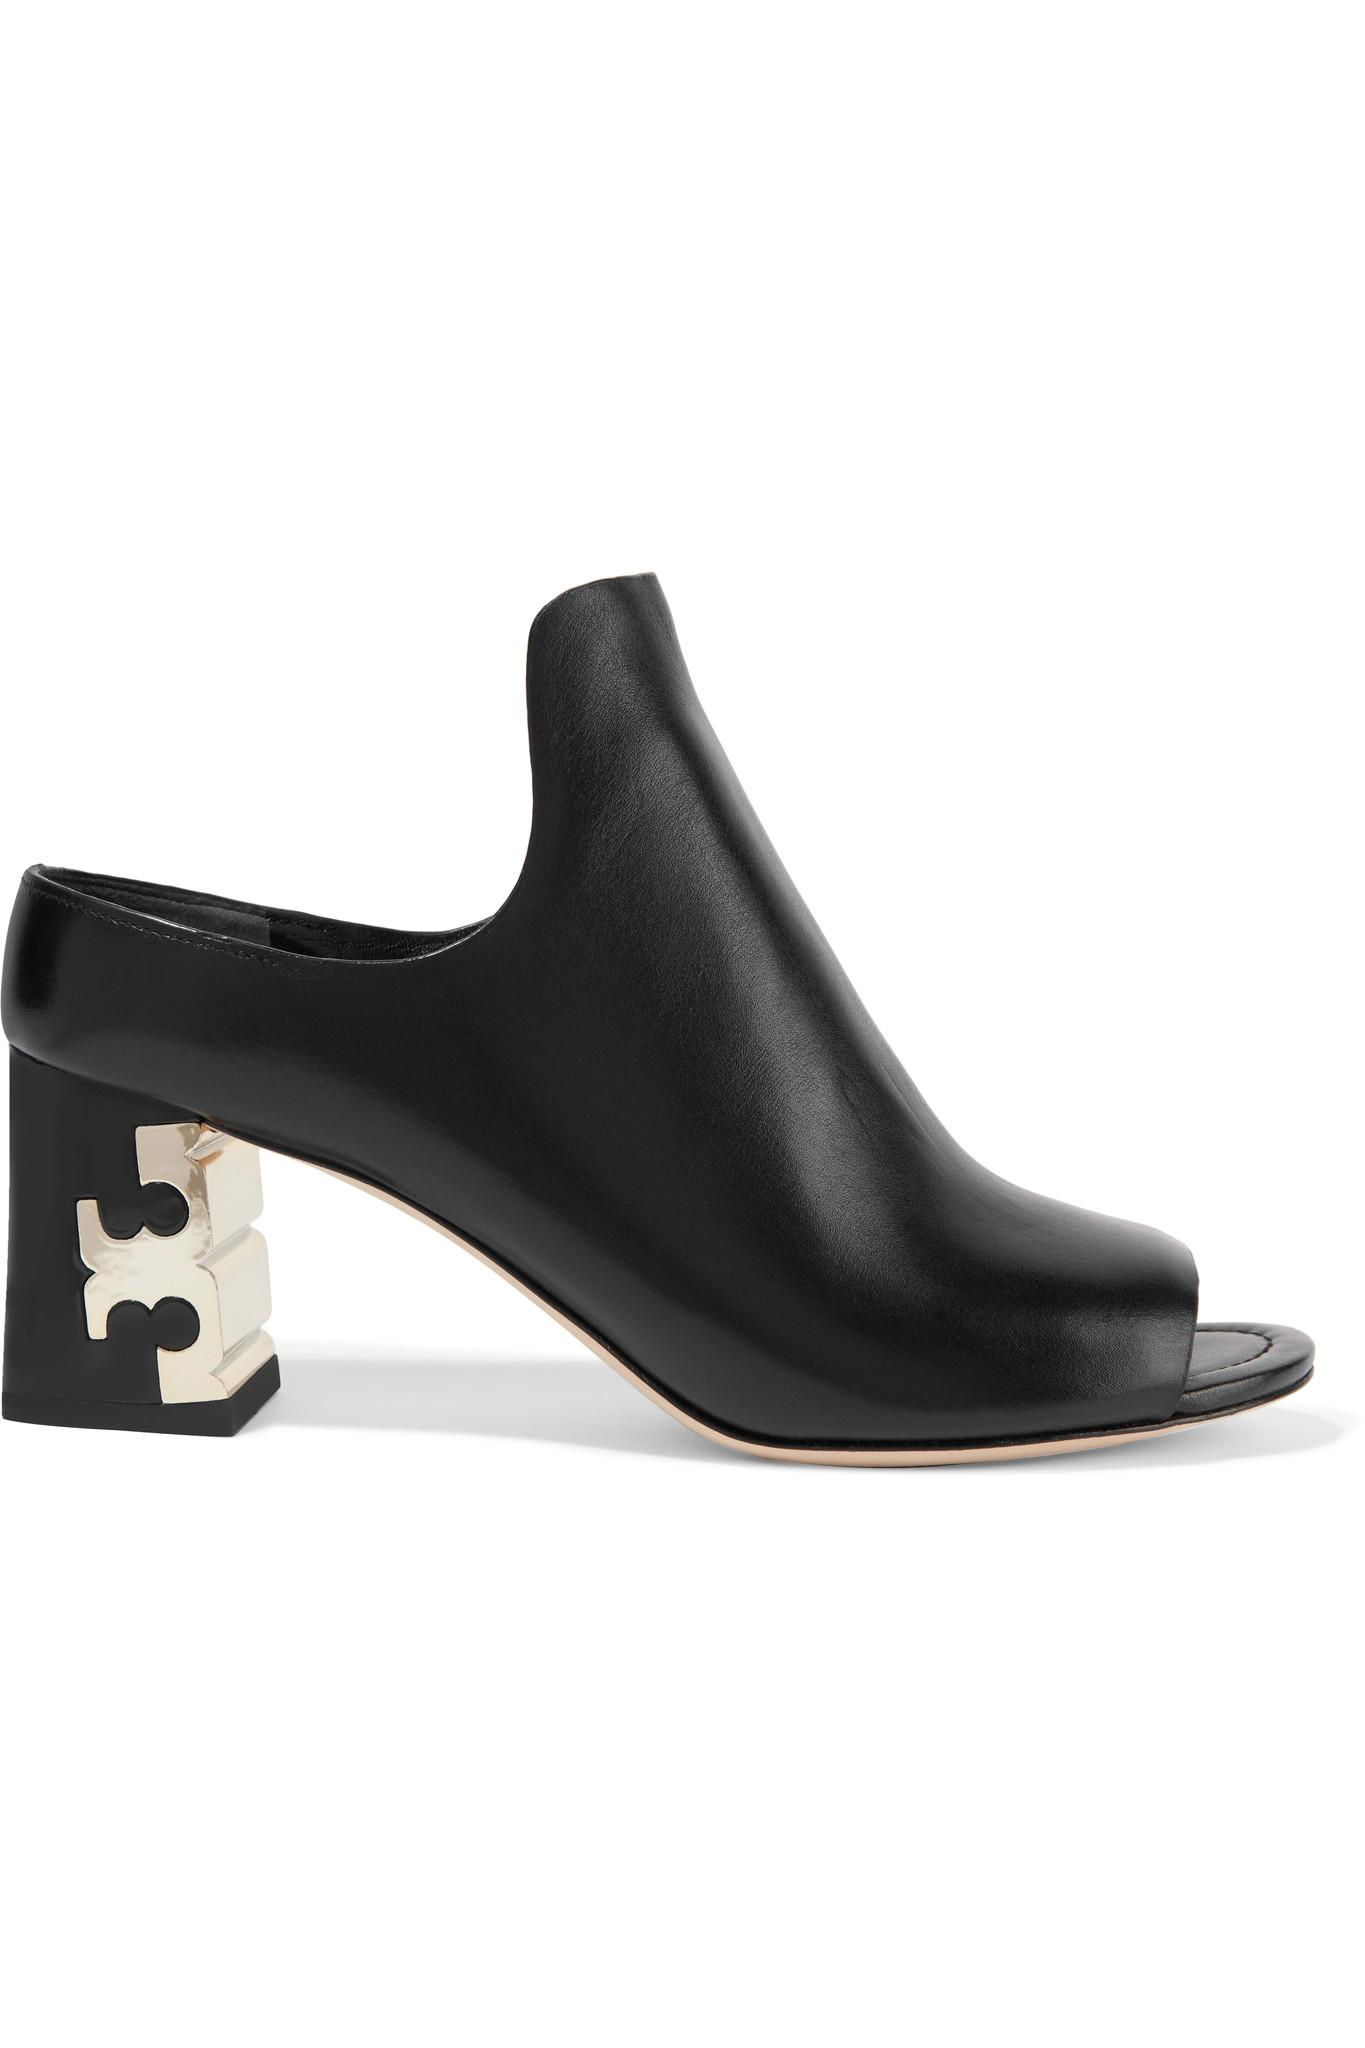 Lyst Tory Burch Finley Leather Mules In Black